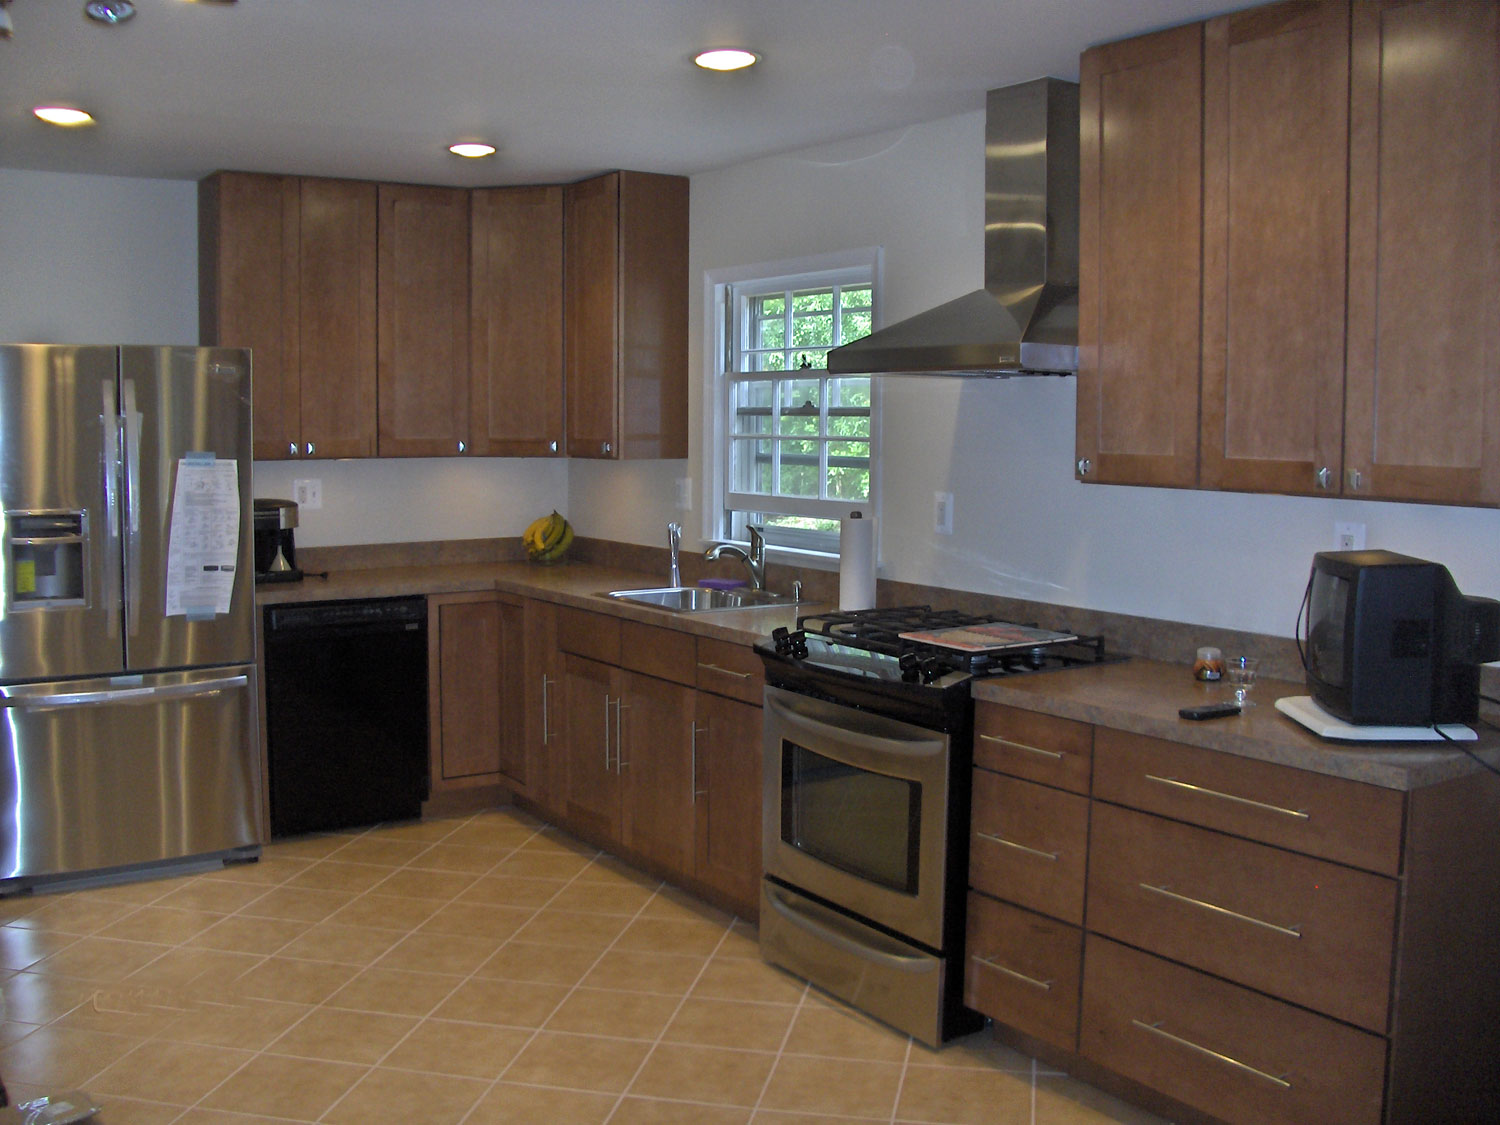 Kitchen-Remodeling-Silver-Spring-Md. Kitchen Remodeling Silver Spring Md